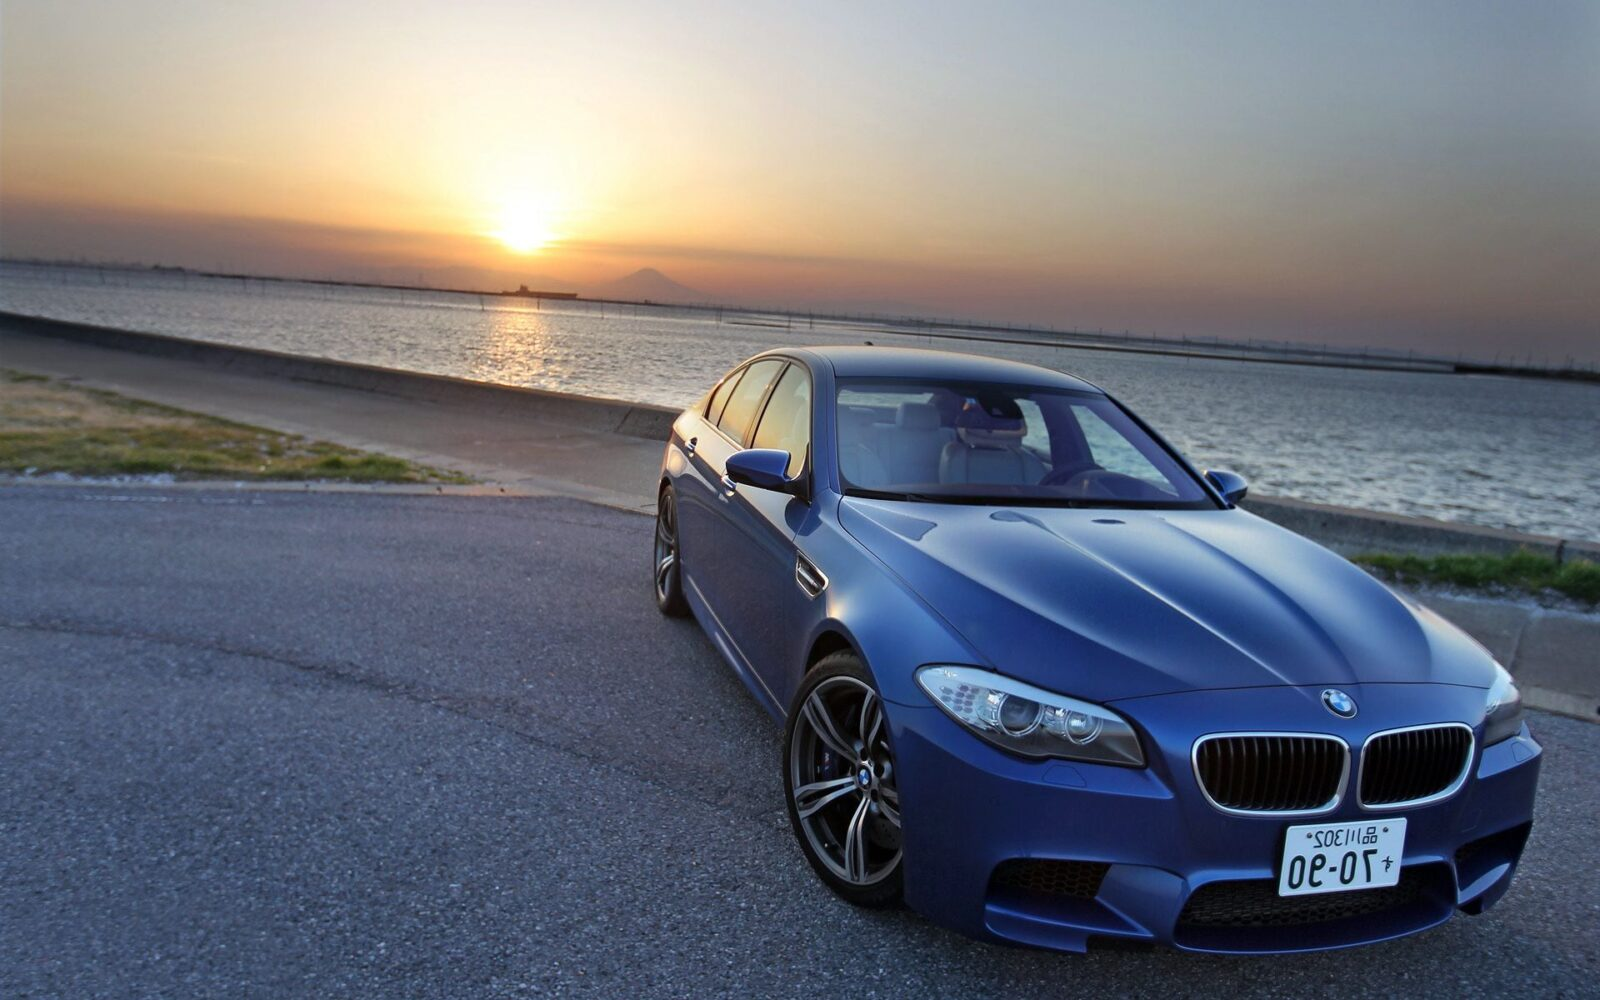 Bmw M Series >> 36+ BMW M5 F10 wallpapers HD High Quality Download